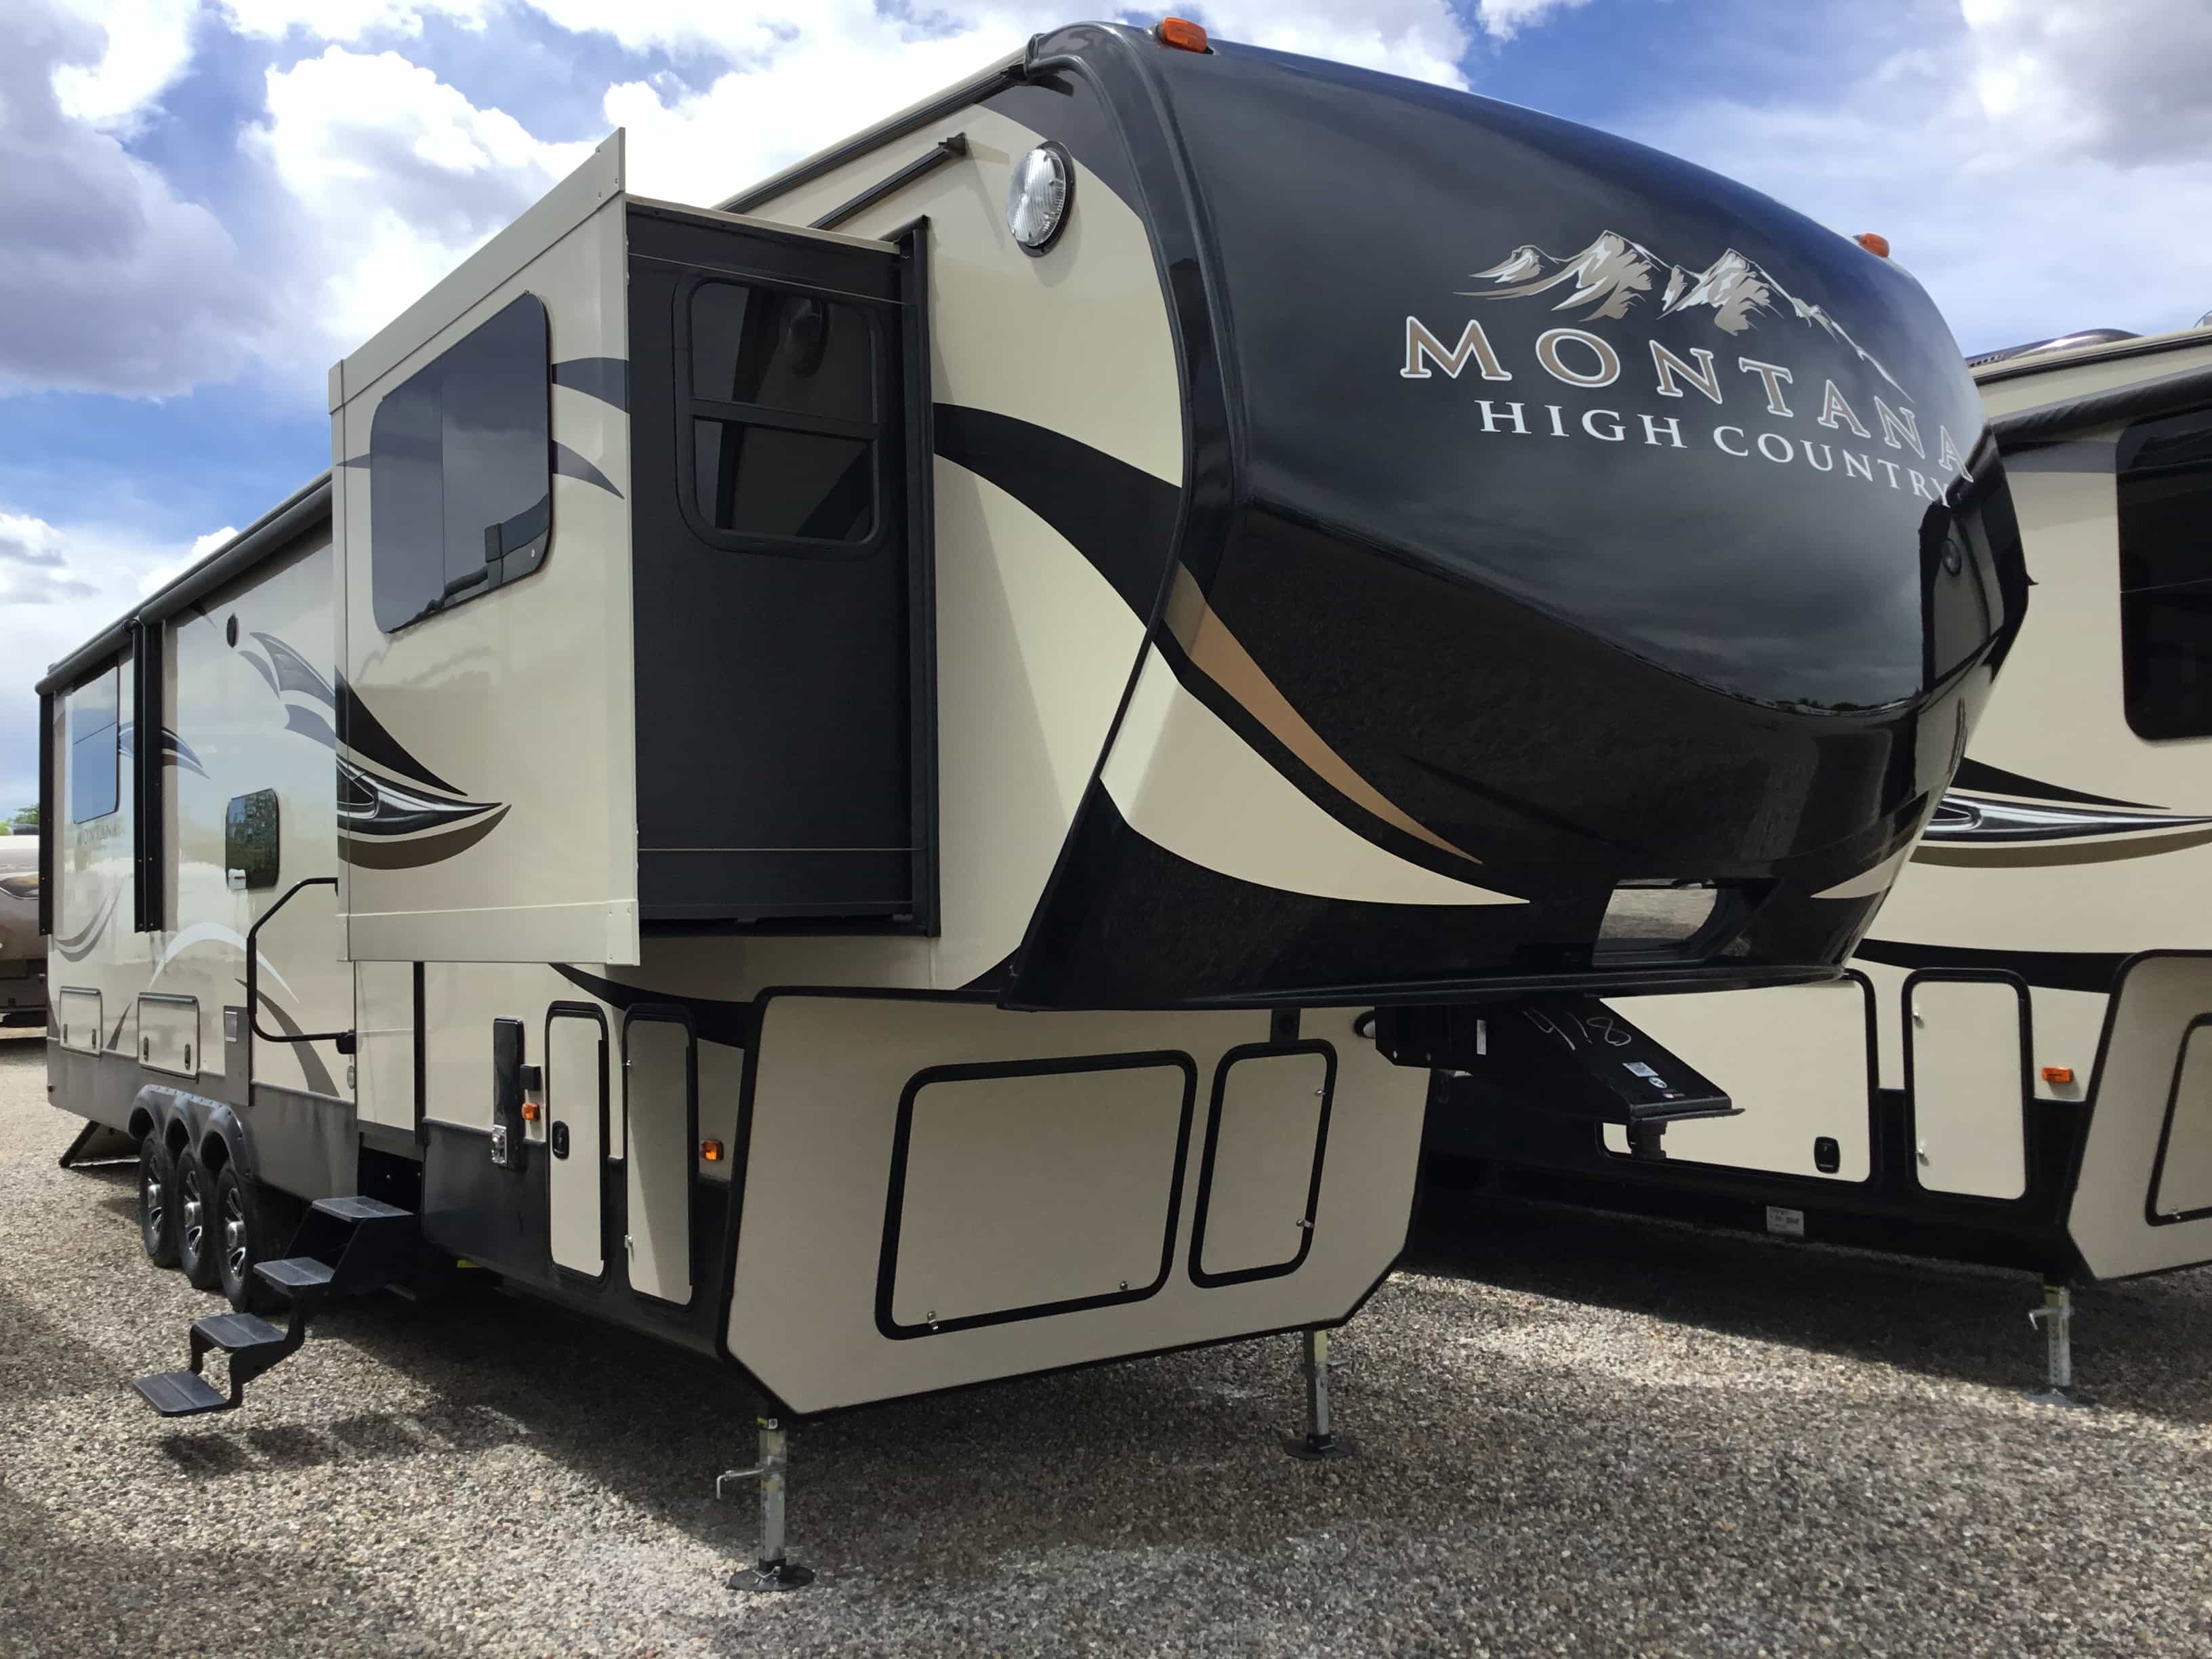 NEW 2017 KEYSTONE KYRV 380TH HC MONTANA